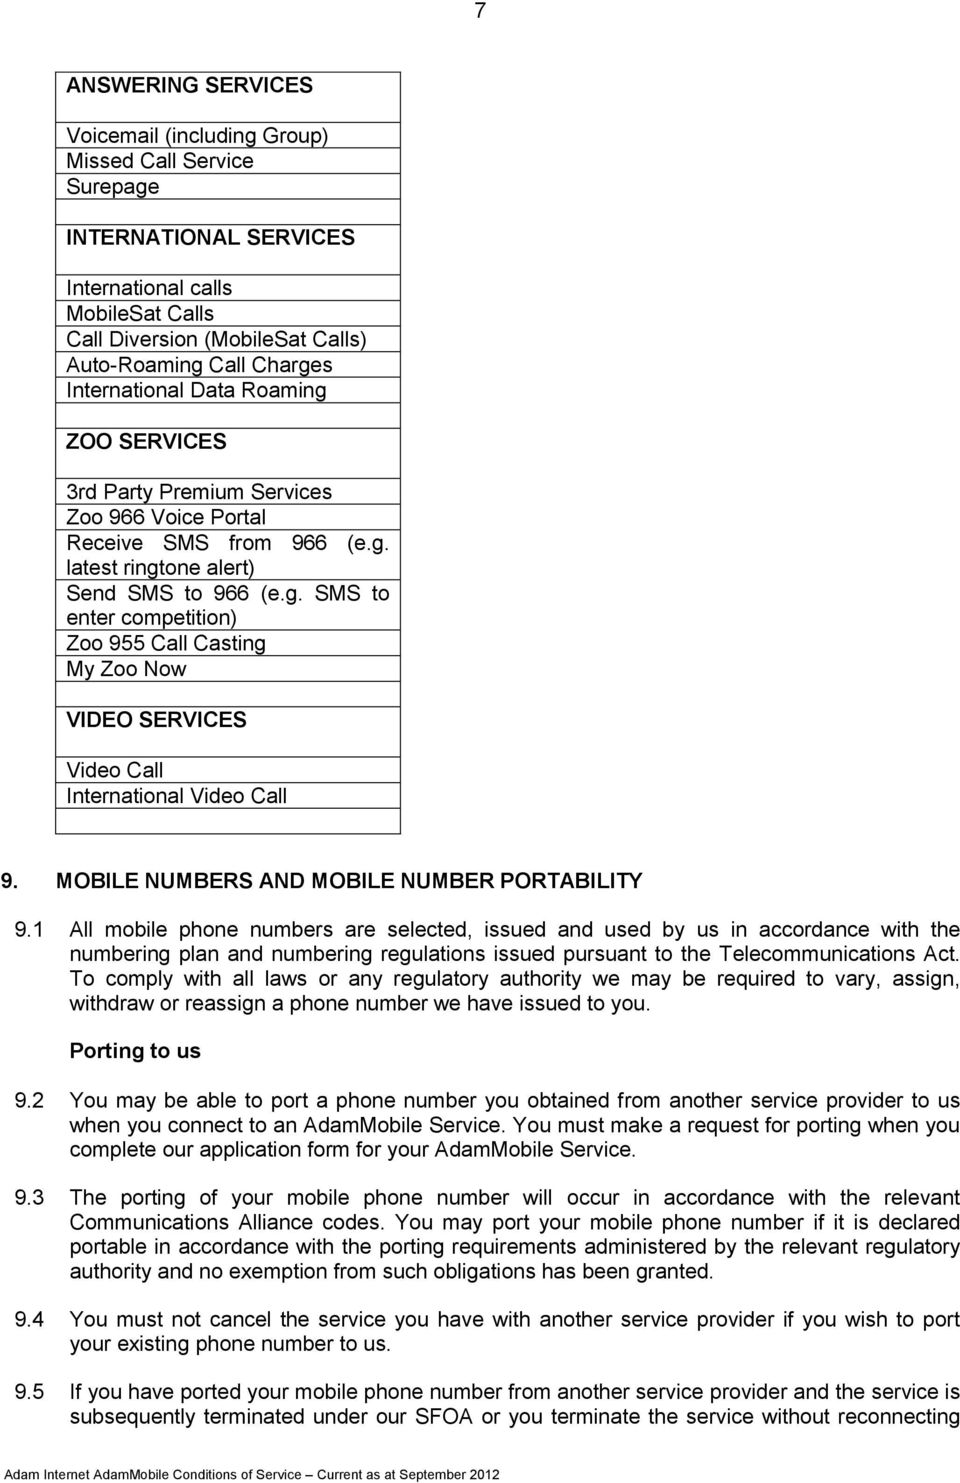 MOBILE NUMBERS AND MOBILE NUMBER PORTABILITY 9.